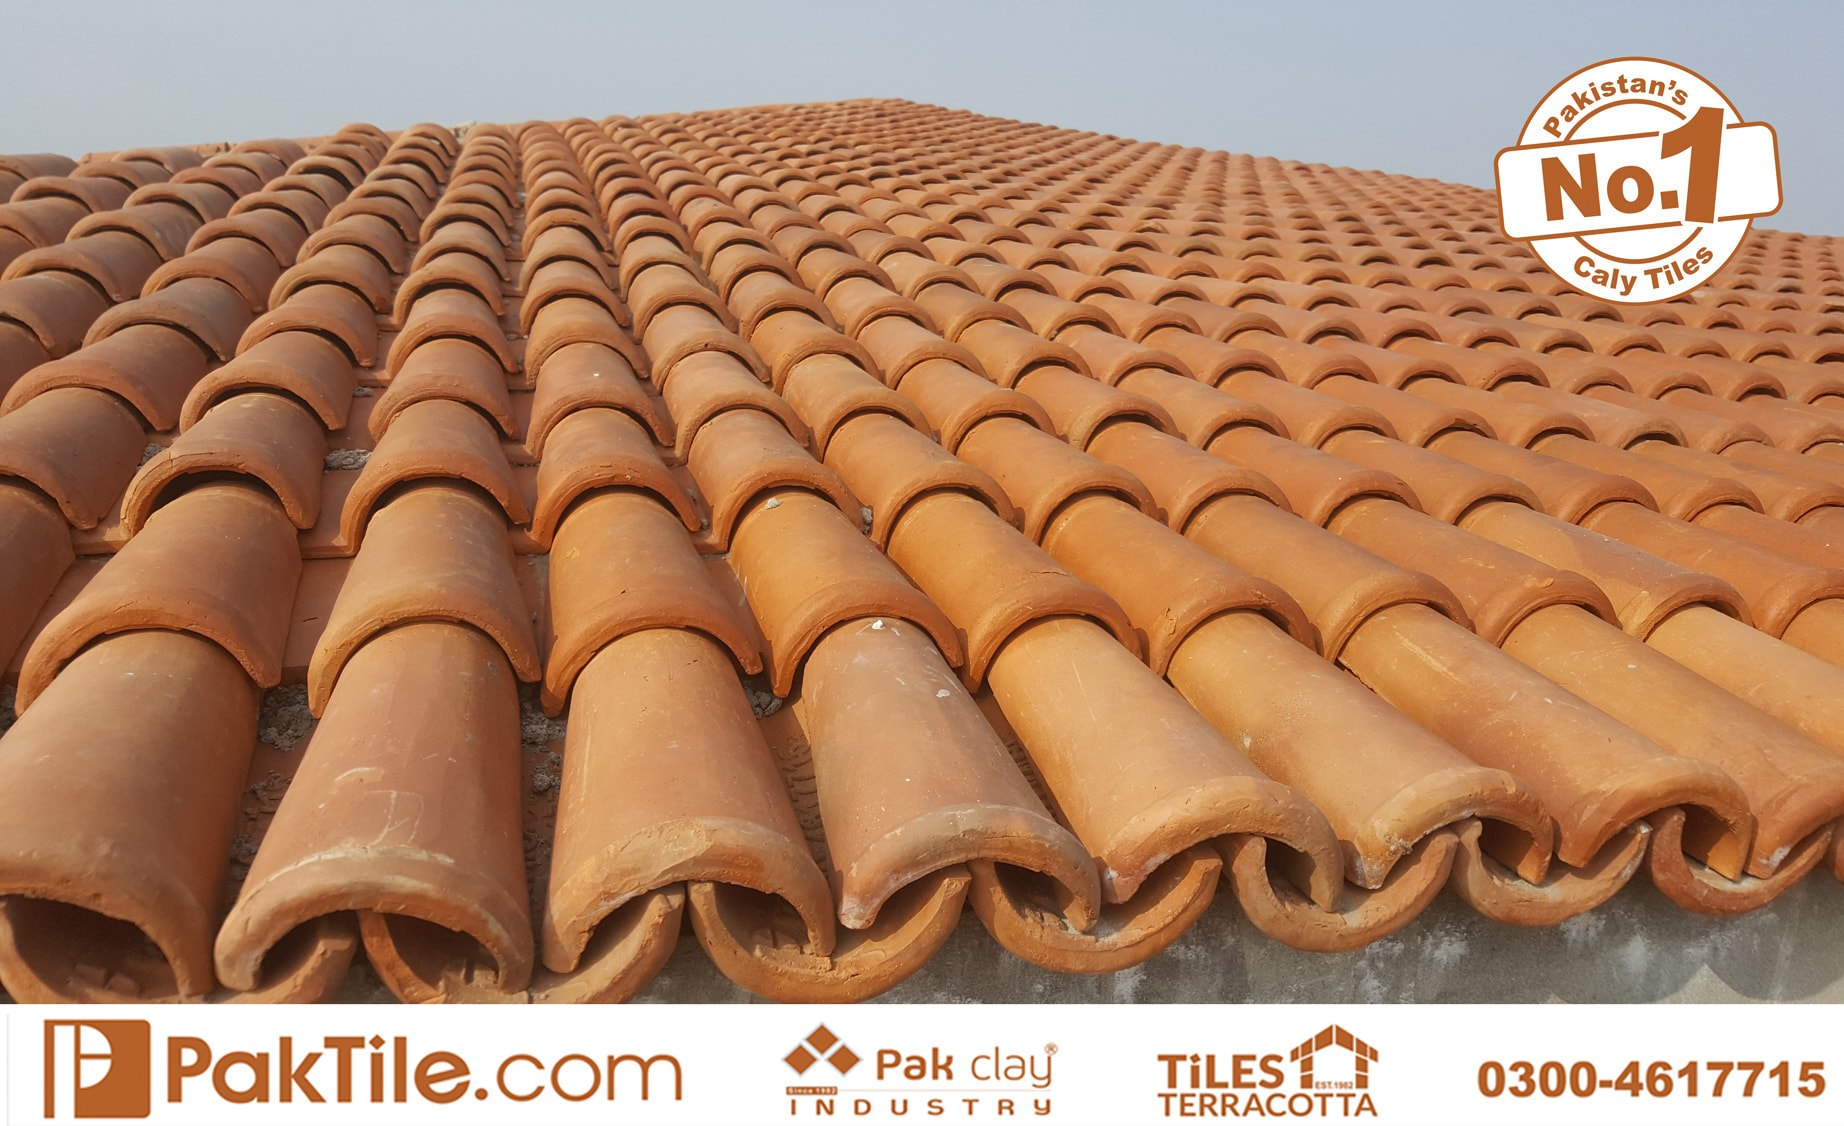 3 Pak Clay Terracotta Roofing Khaprail Tiles in Karachi Images.